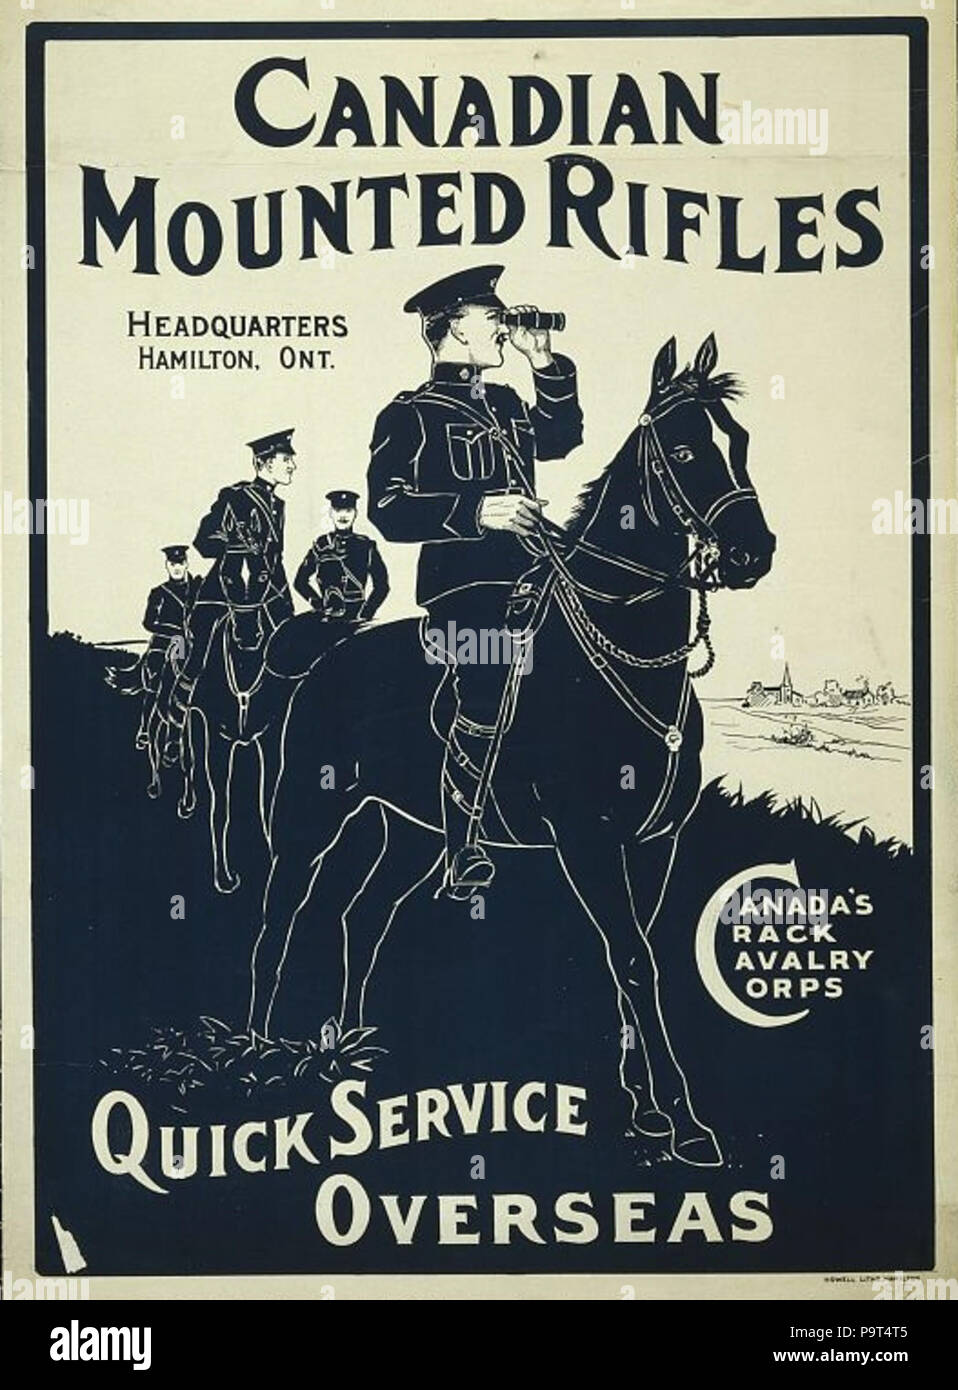 . 'Canadian Mounted Rifles. Headquarters Hamilton, Ont. Canada's Crack Cavalry Corps. Quick Service Overseas'. Canadian World War I recruitment poster. 1914–18 272 Canadian Mountian Rifles recruitment poster - Stock Image